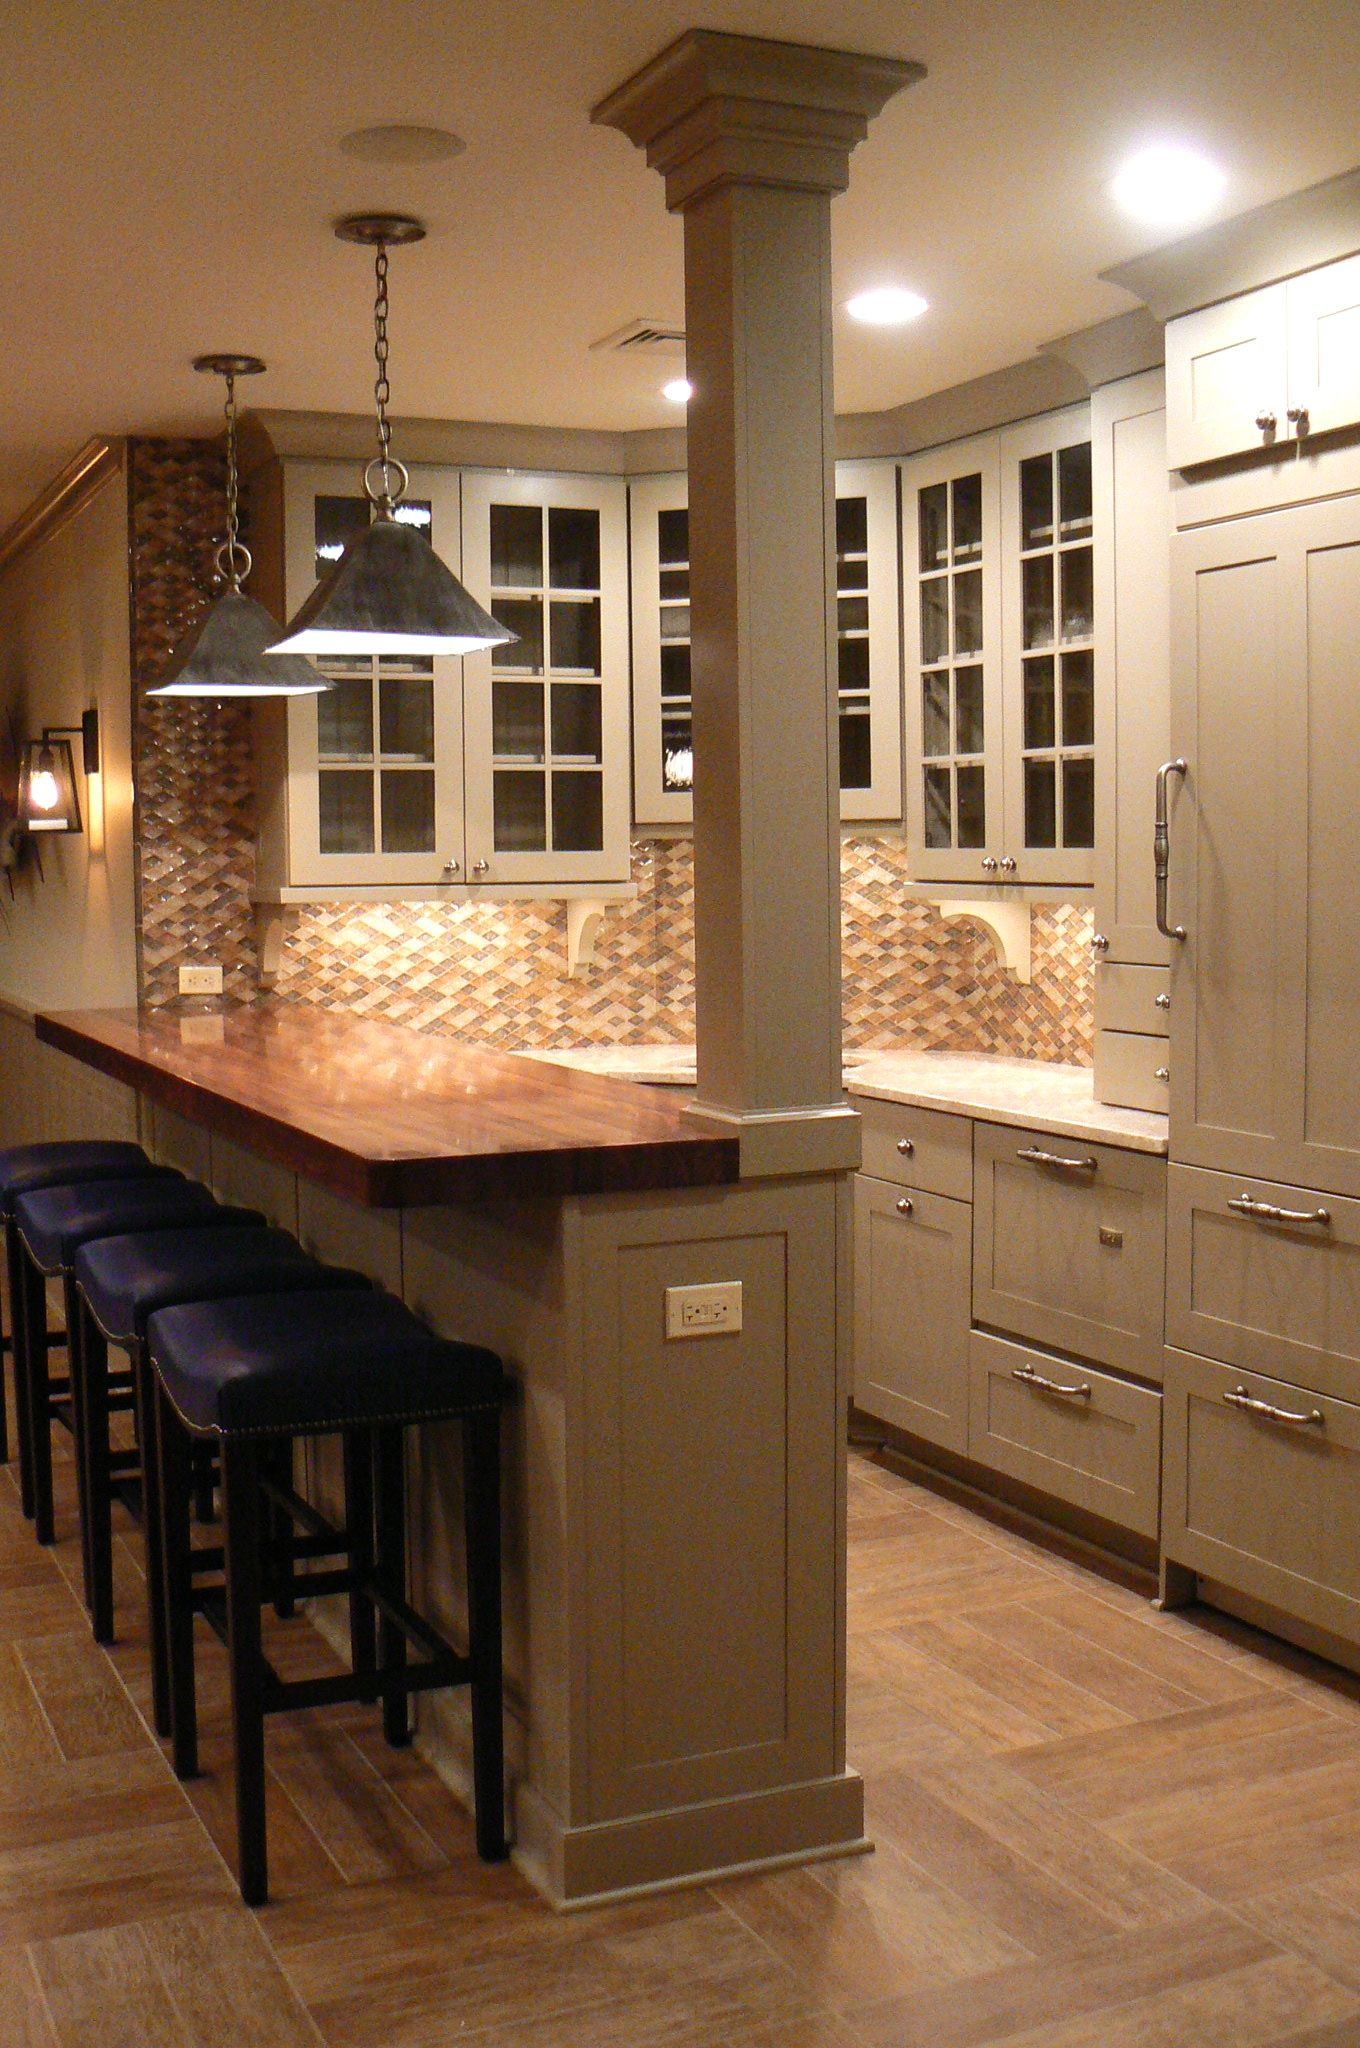 Basement bar for home pinterest - Basement kitchen and bar ideas ...